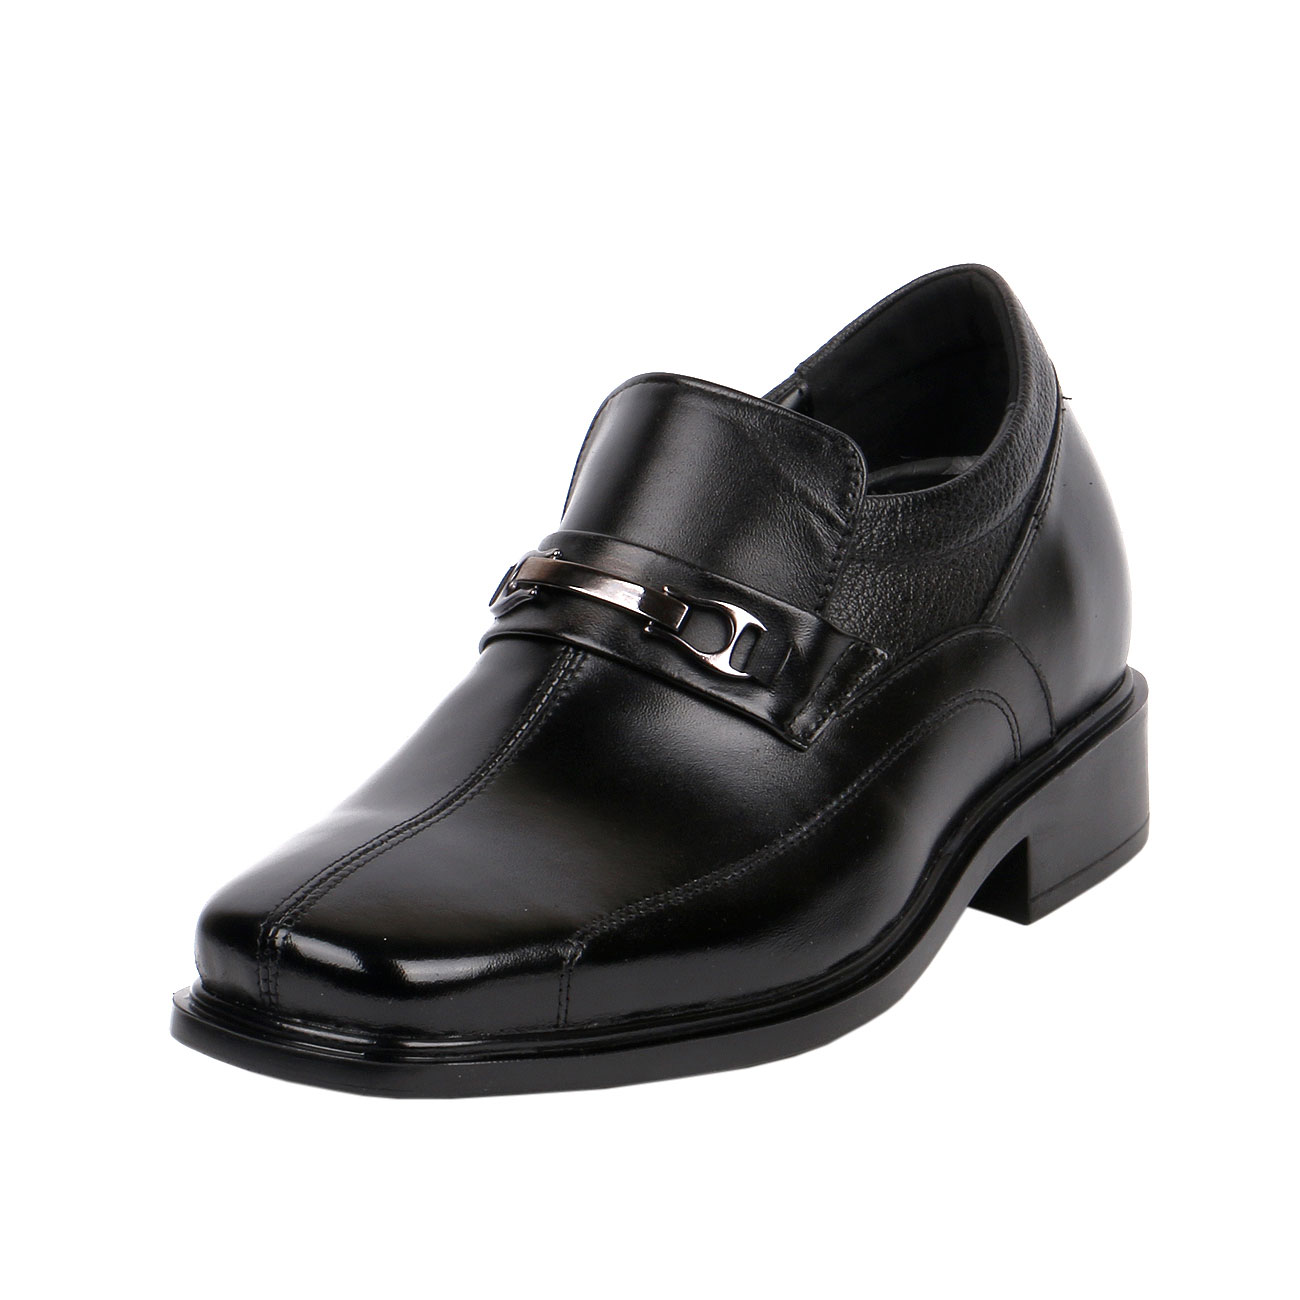 KL602, Limited Version of Metal Bit Loafer More Attractive Gentlemen Make An Effort To Look Good-1